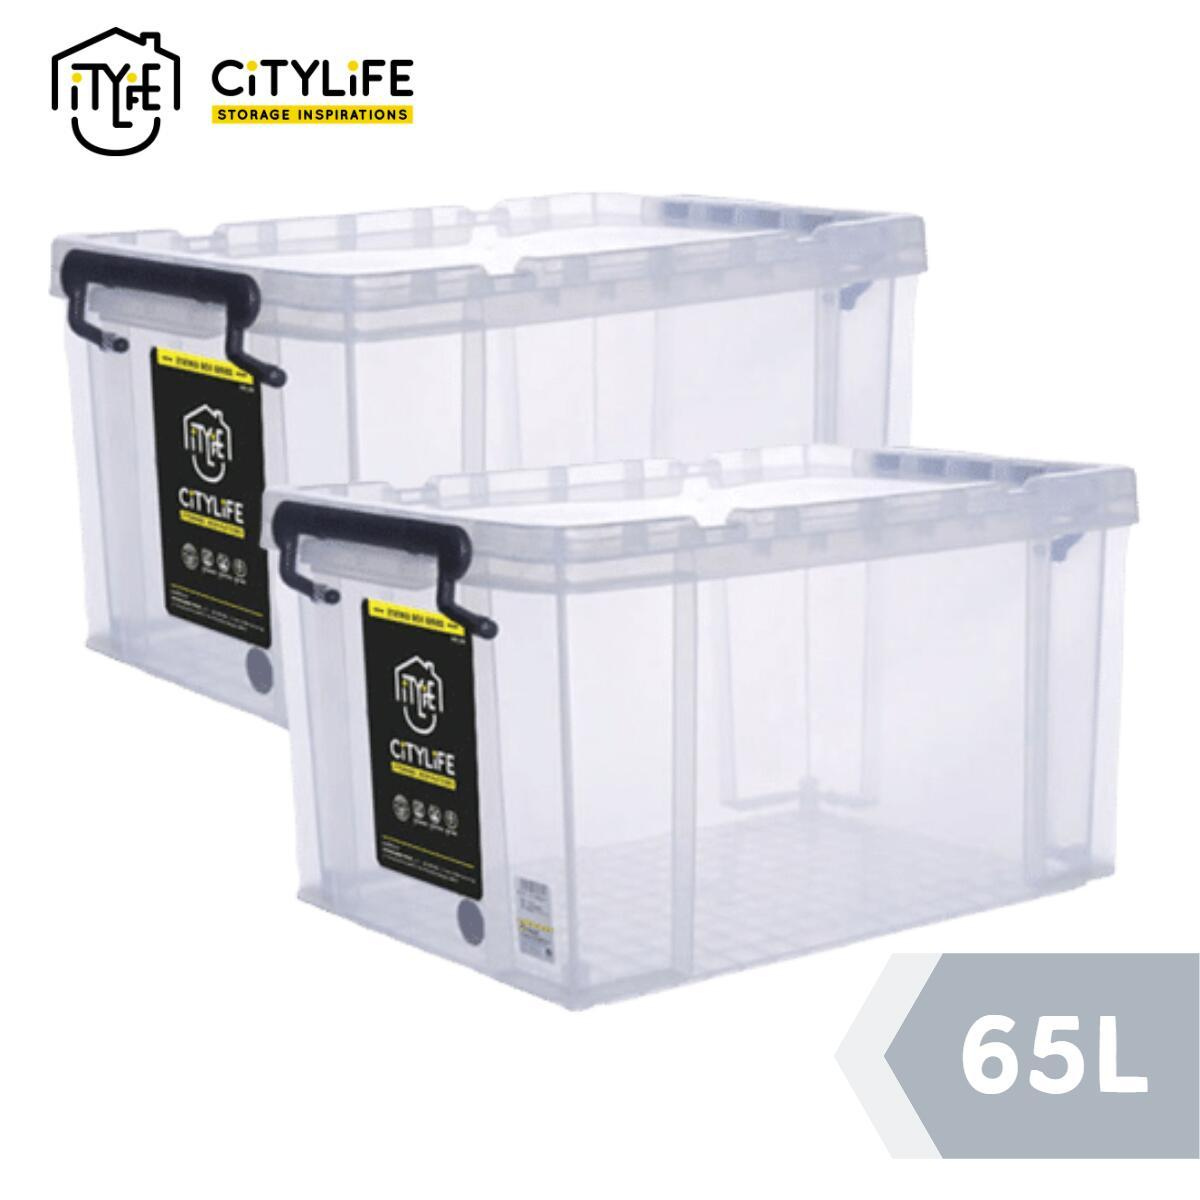 [ Bundle of 2] - Citylife 65L Strong Box - Reinforced for Greater Durability